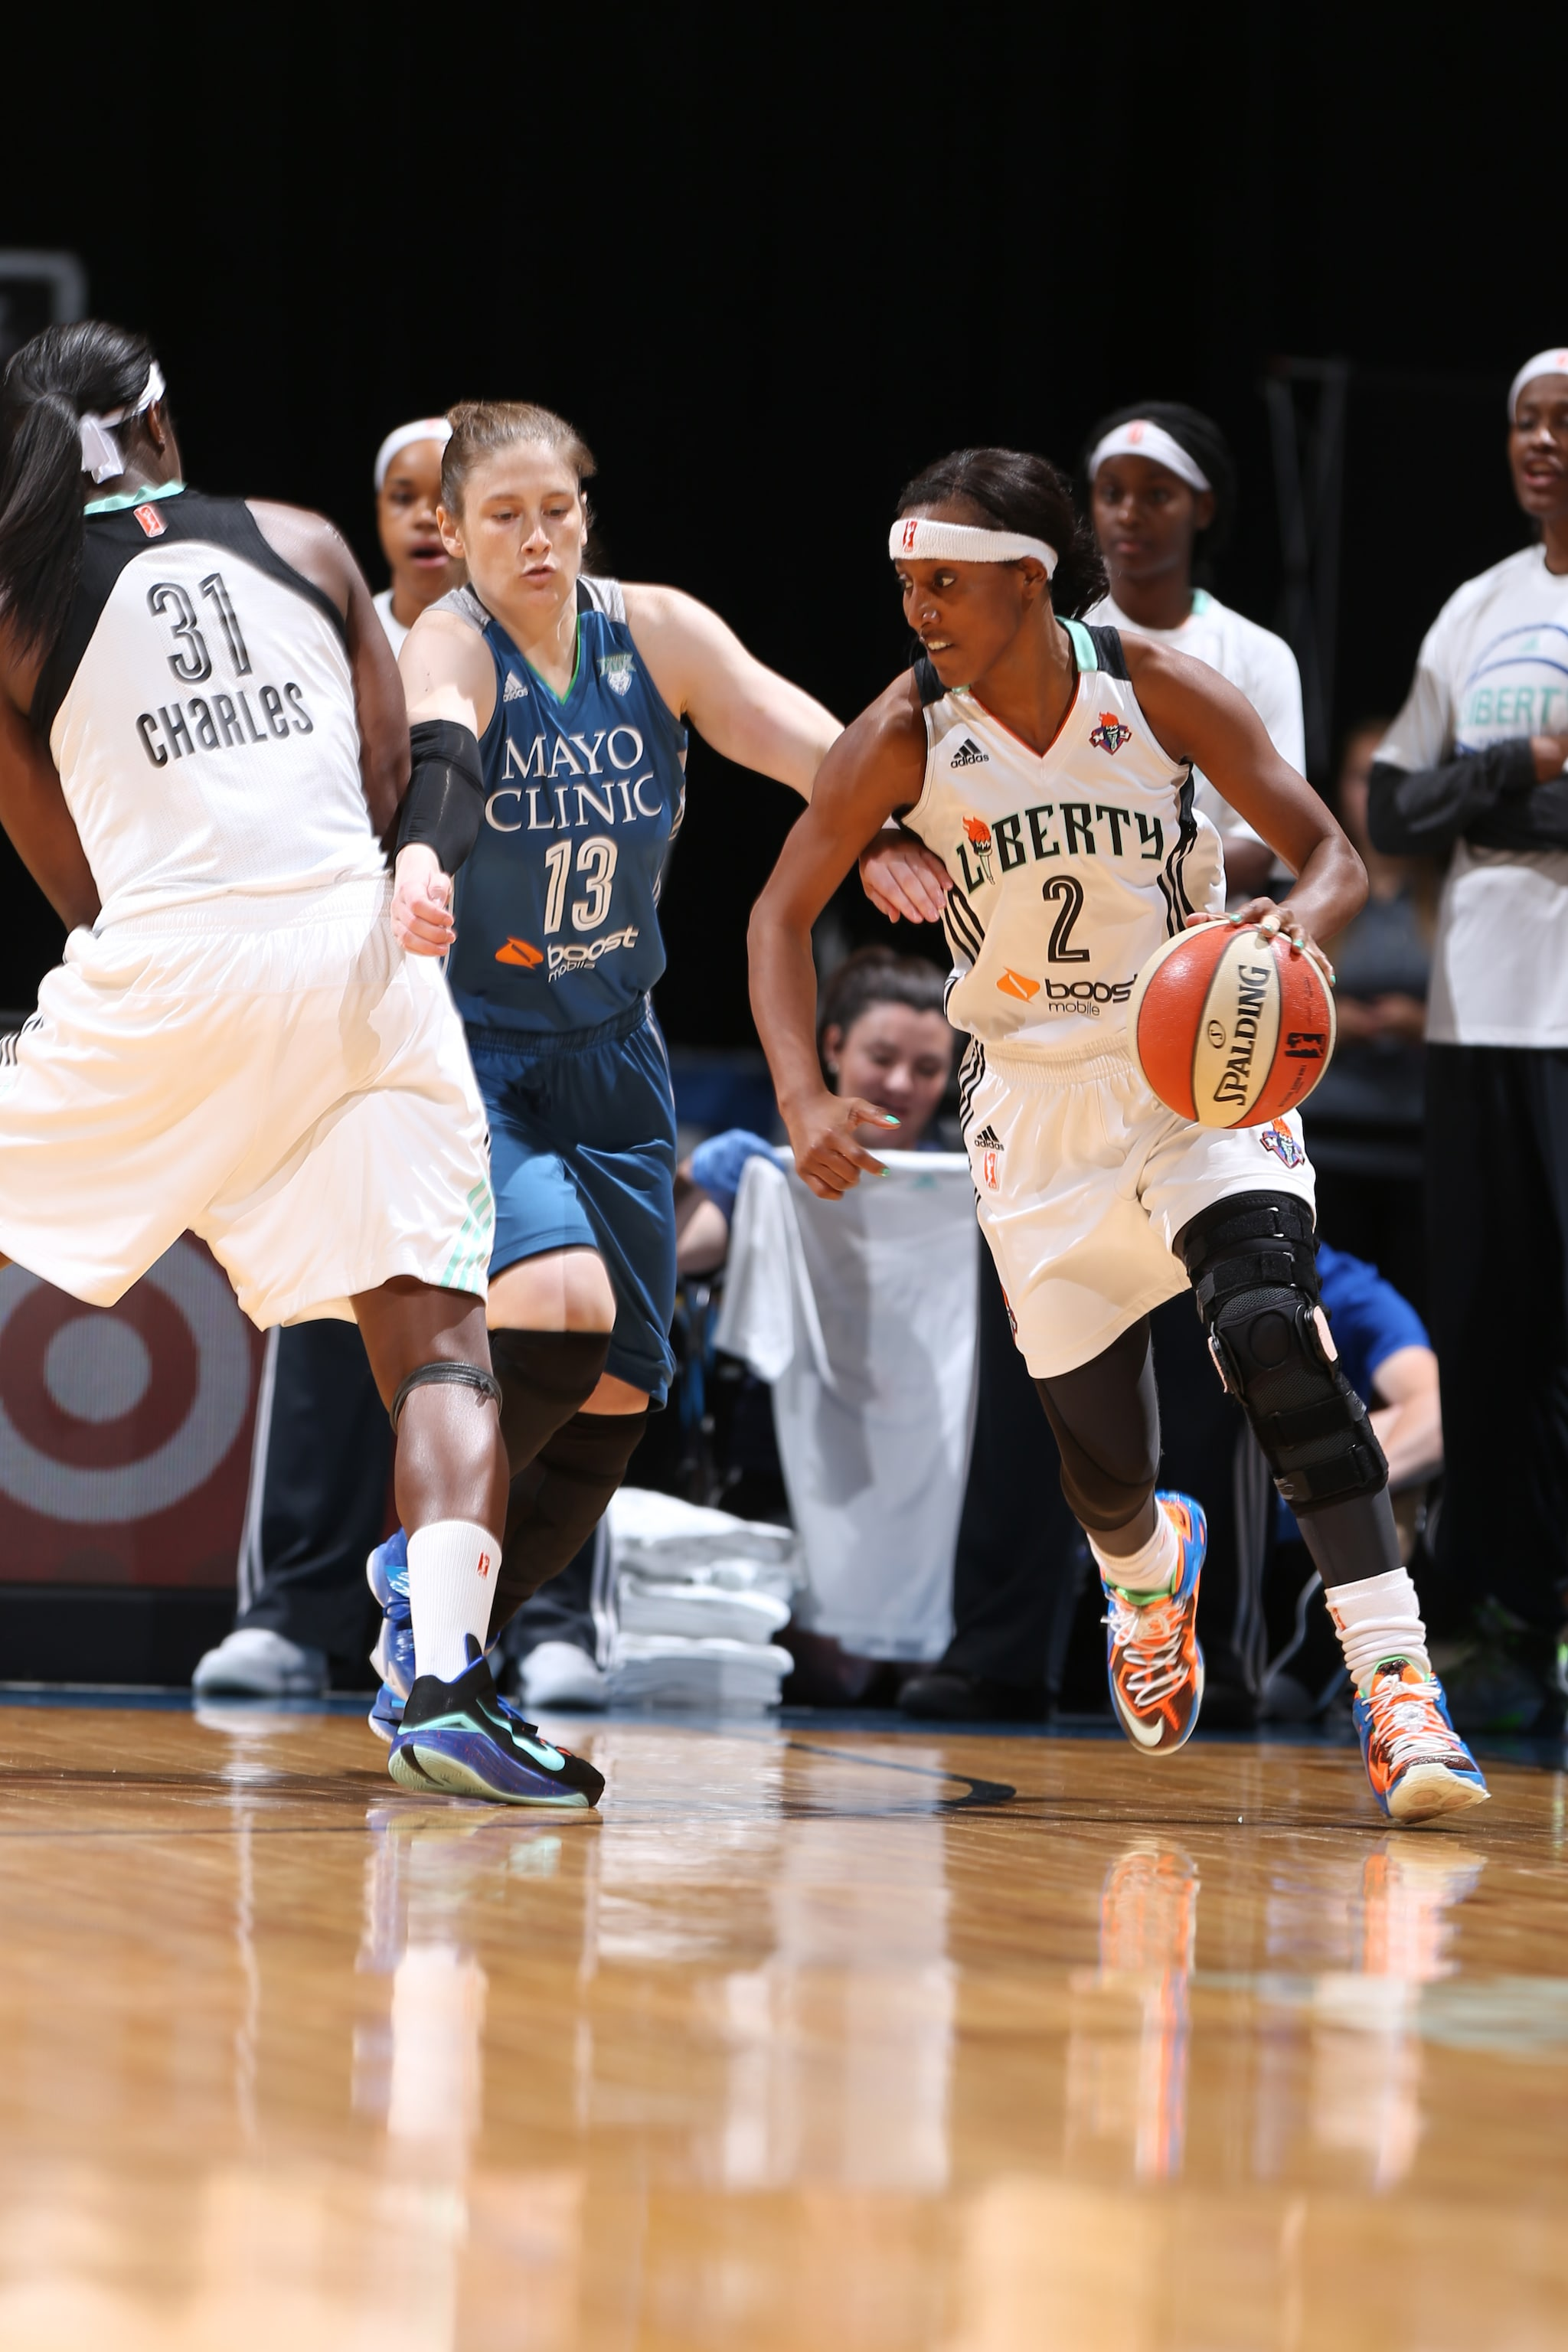 MINNEAPOLIS, MN - JUNE 1:  Candice Wiggins #2 of the New York Liberty handles the ball against Lindsay Whalen #13 of the Minnesota Lynx on June 1, 2015 at Target Center in Minneapolis, Minnesota. NOTE TO USER: User expressly acknowledges and agrees that, by downloading and or using this Photograph, user is consenting to the terms and conditions of the Getty Images License Agreement. Mandatory Copyright Notice: Copyright 2015 NBAE (Photo by David Sherman/NBAE via Getty Images)